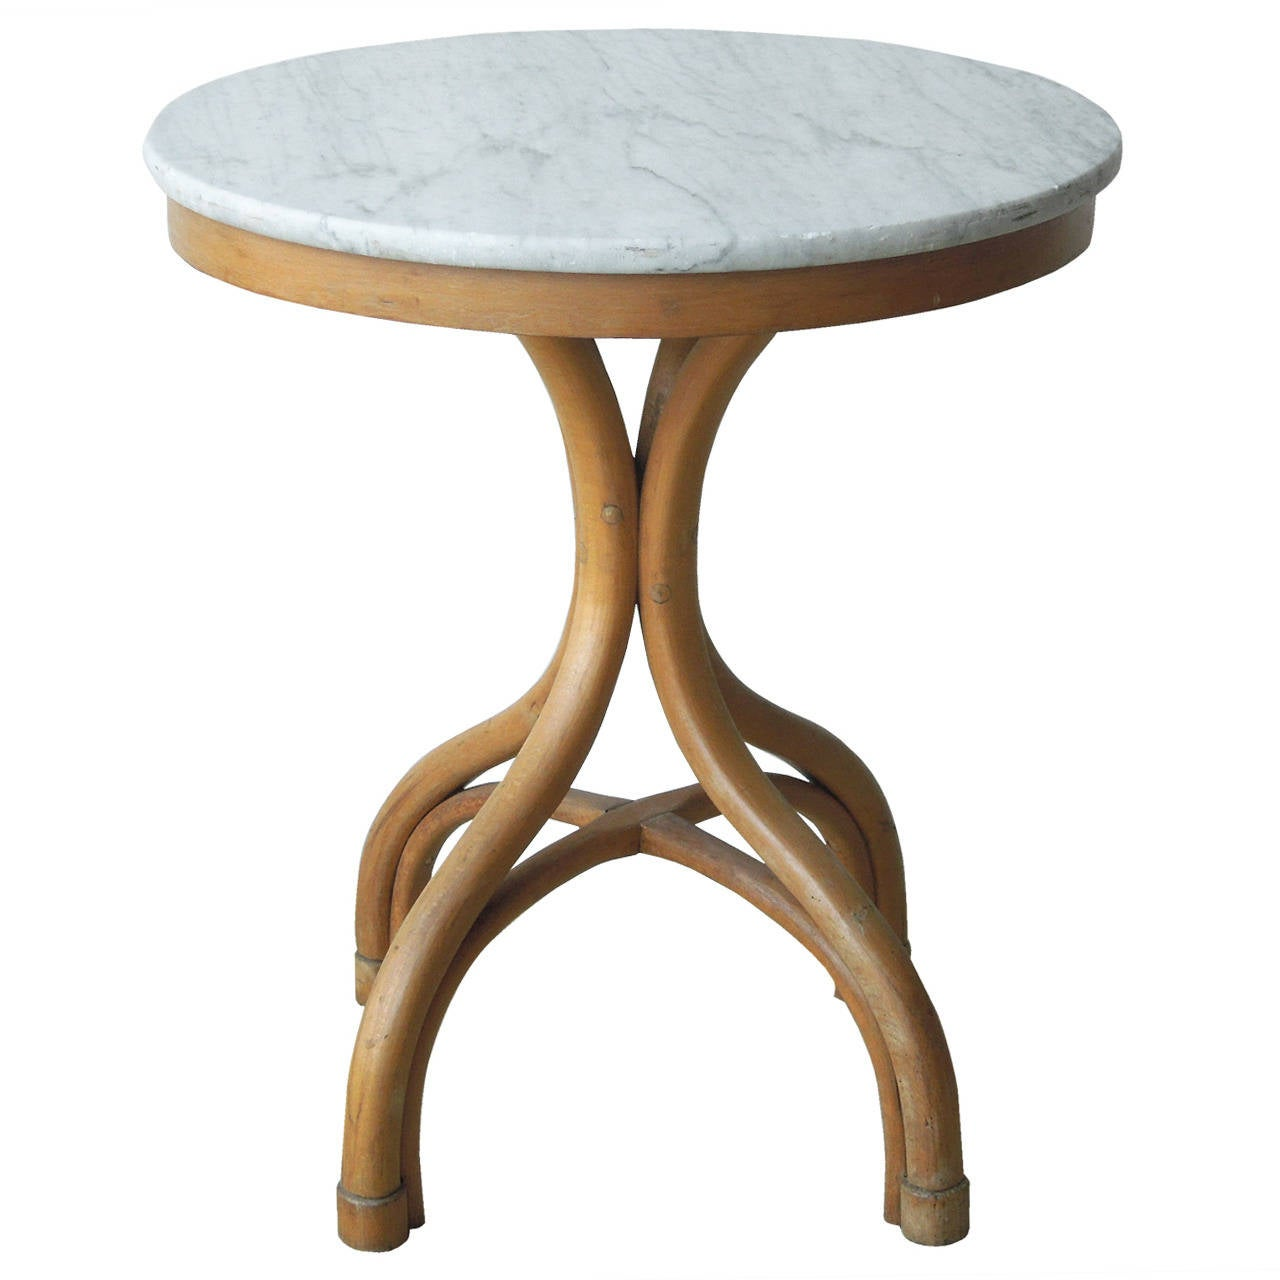 Thonet Bentwood Round Marble Top Table At 1stdibs